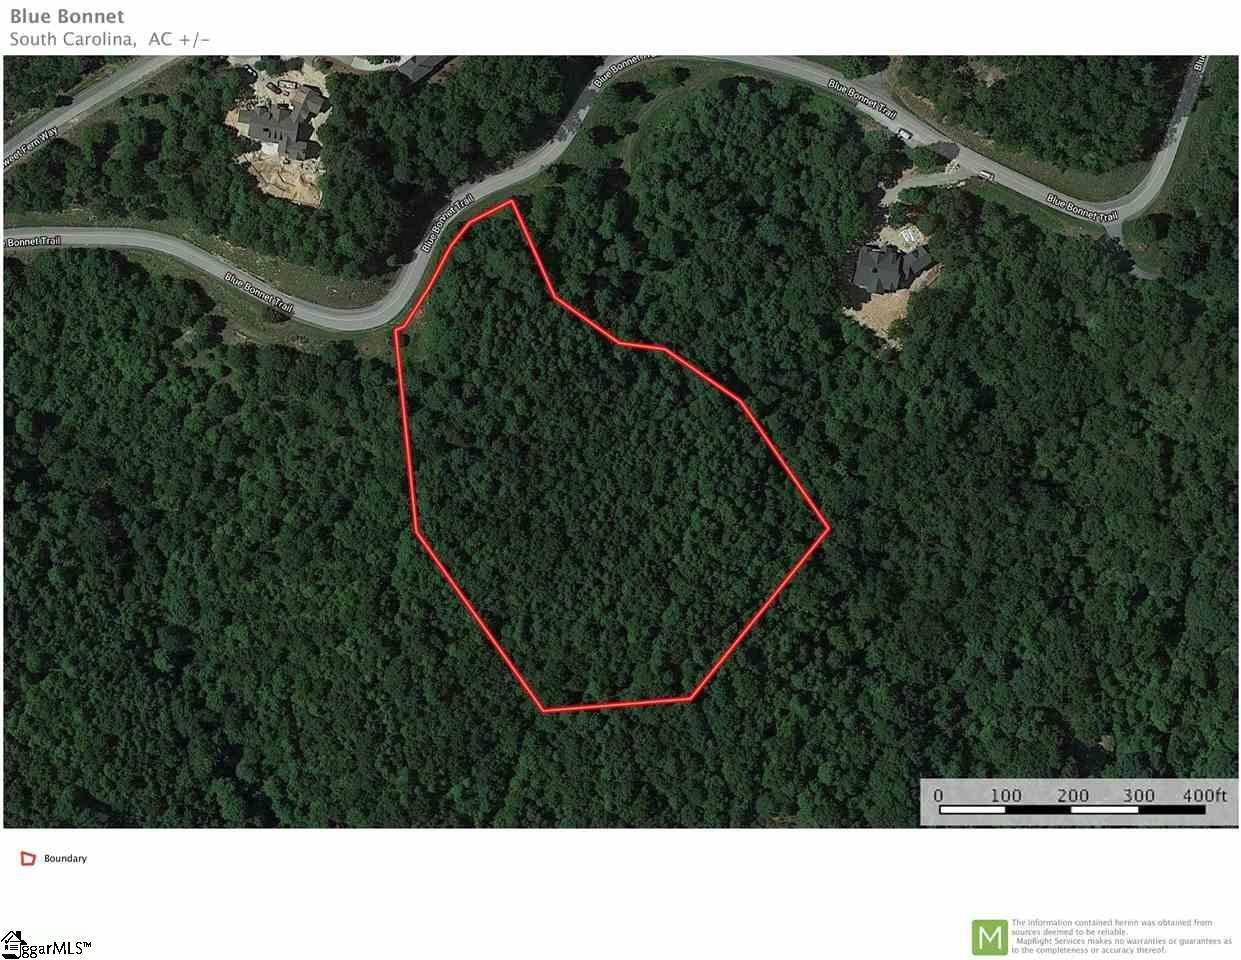 18. Residential Lot for Sale at The Cliffs At Mountain Park, Marietta, SC 29661